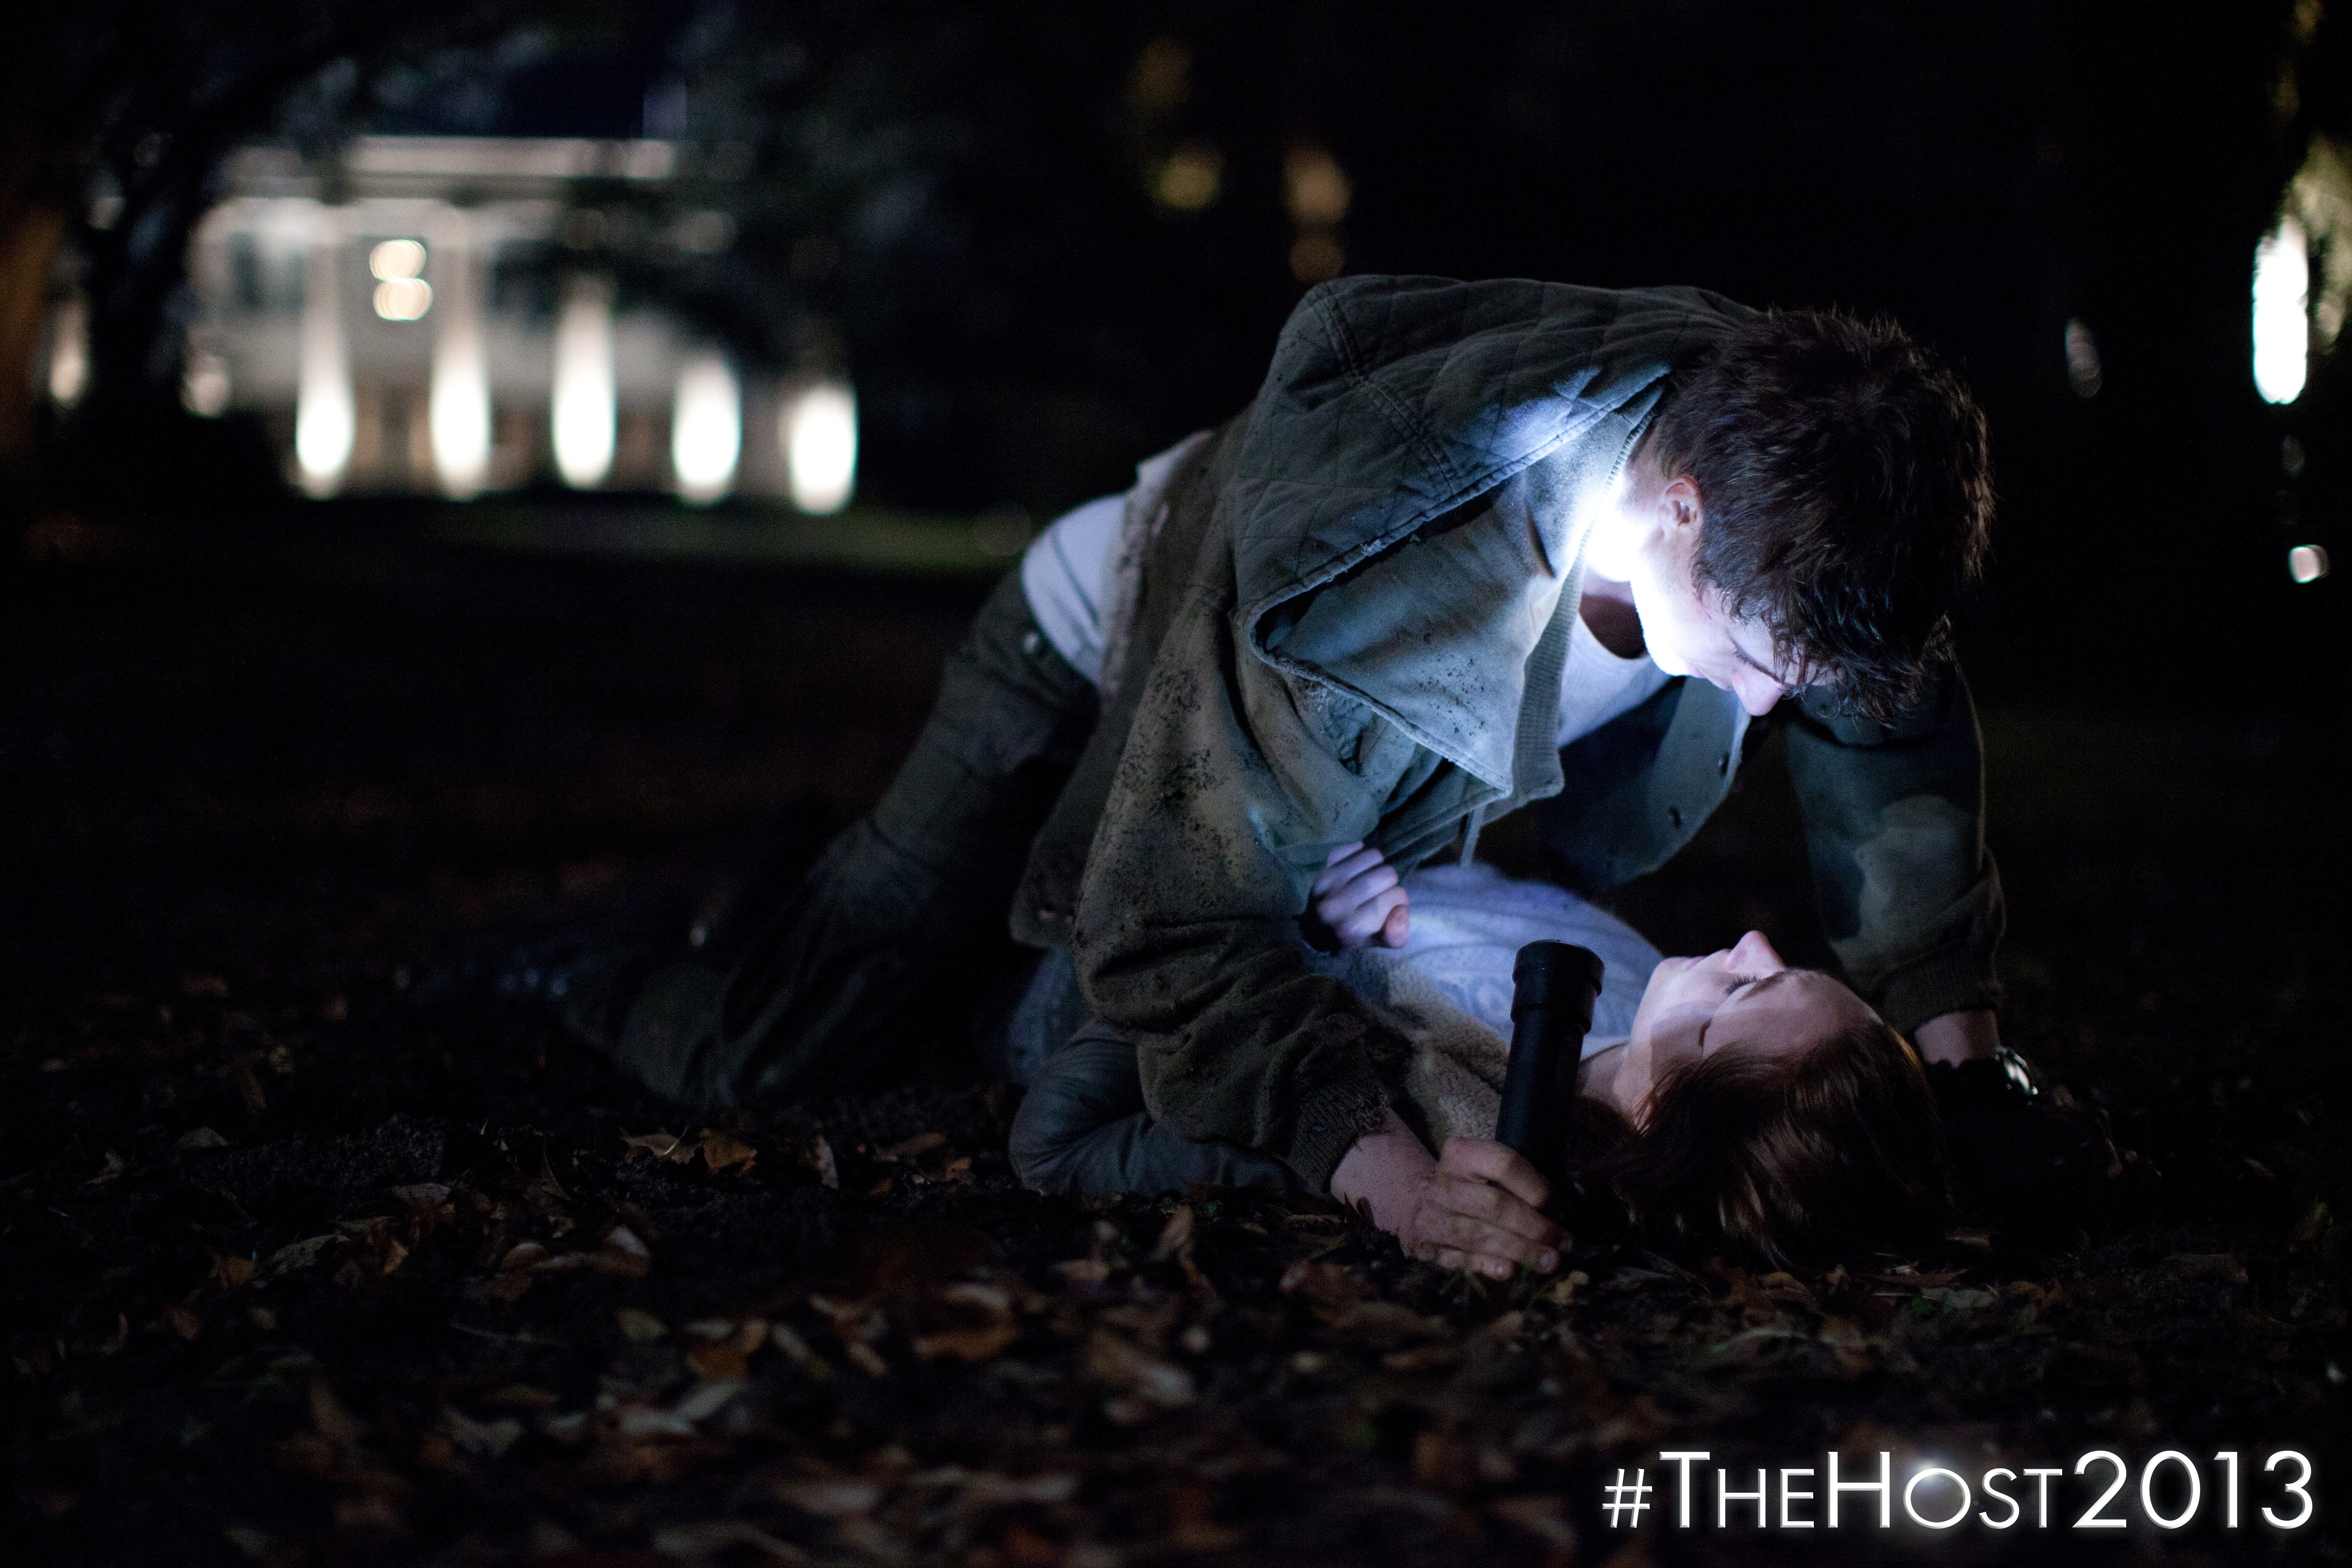 thhost2013 TH 00470 Saoirse Ronan Battles Aliens in the New Trailer and Photos From The Host